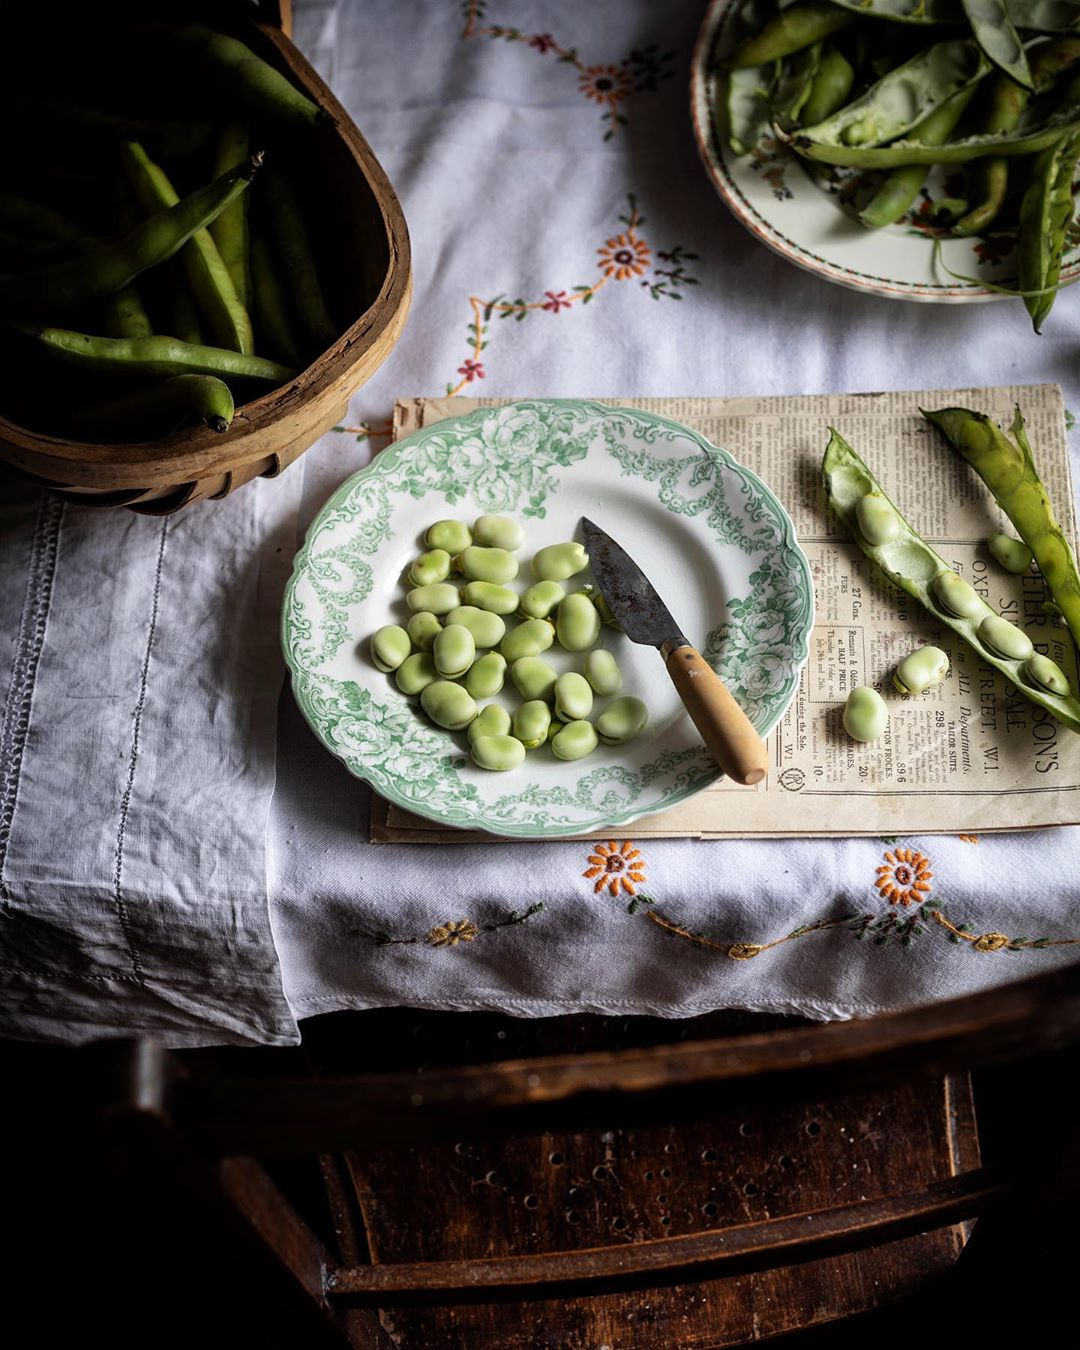 Broad beans never looked so good. Source:  @twiggstudios